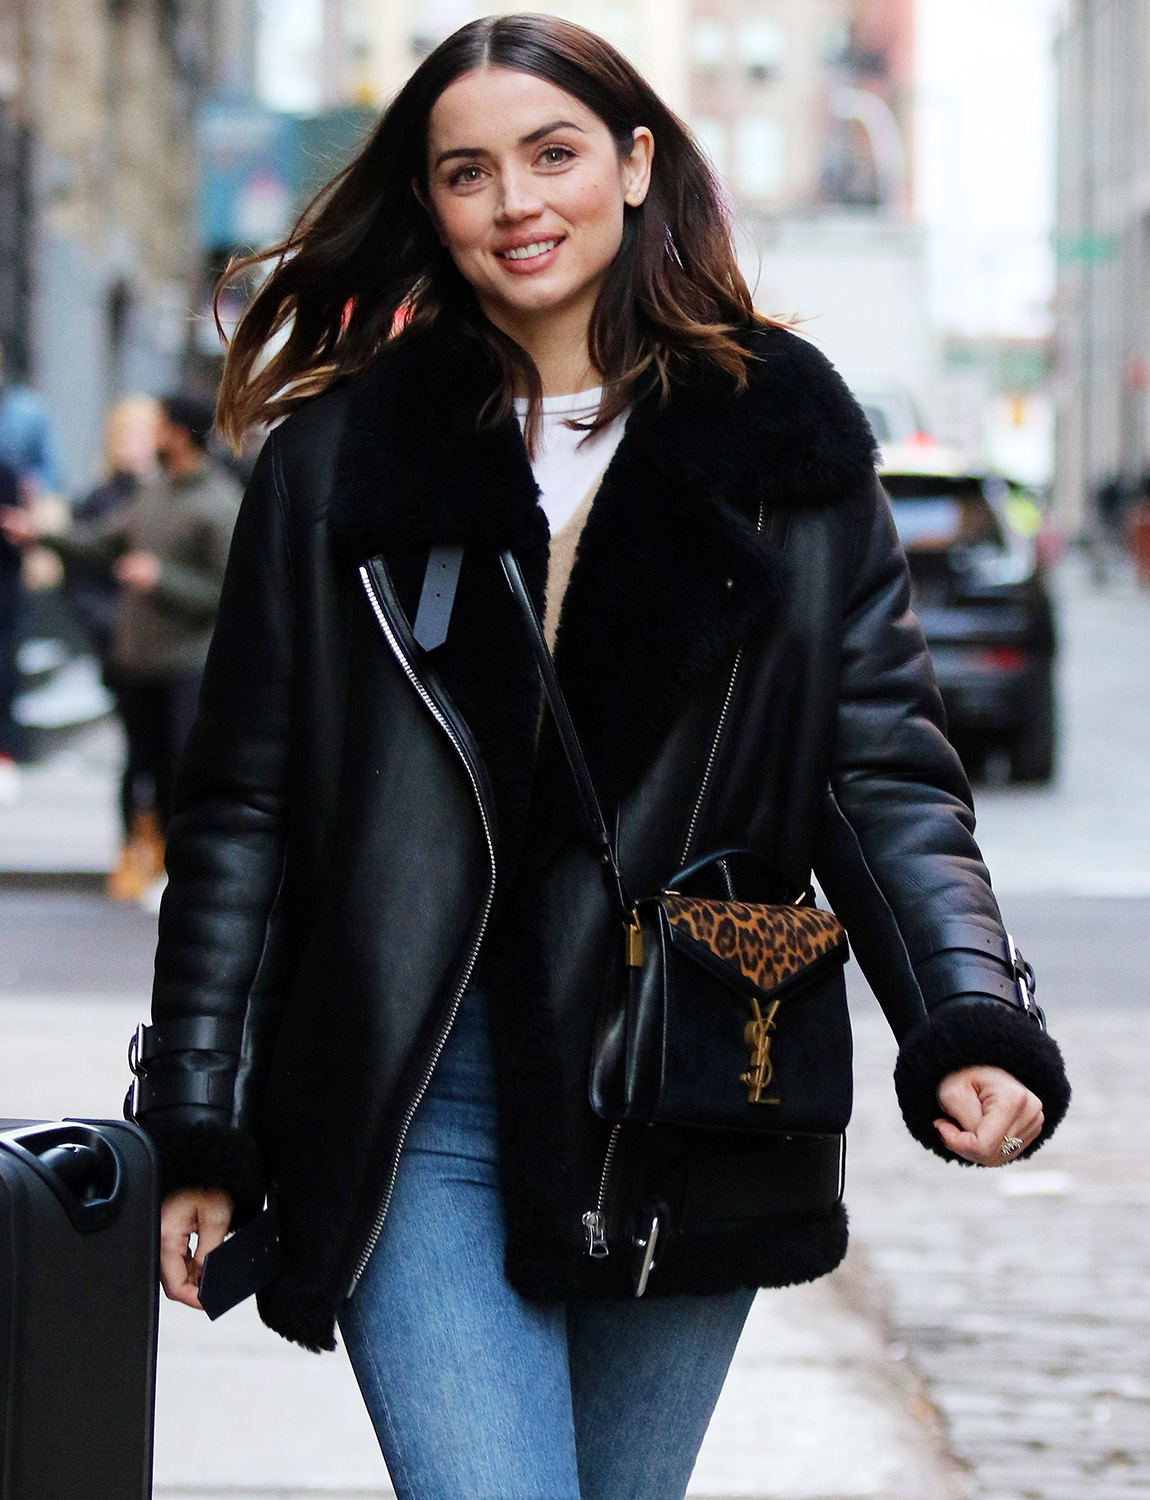 """Upcoming """"No Time To Die"""" bond girl star Ana De Armas is all smiles while shopping in Manhattan's Soho area. Ana was seen looking very stylish sporting a YSL handbag"""